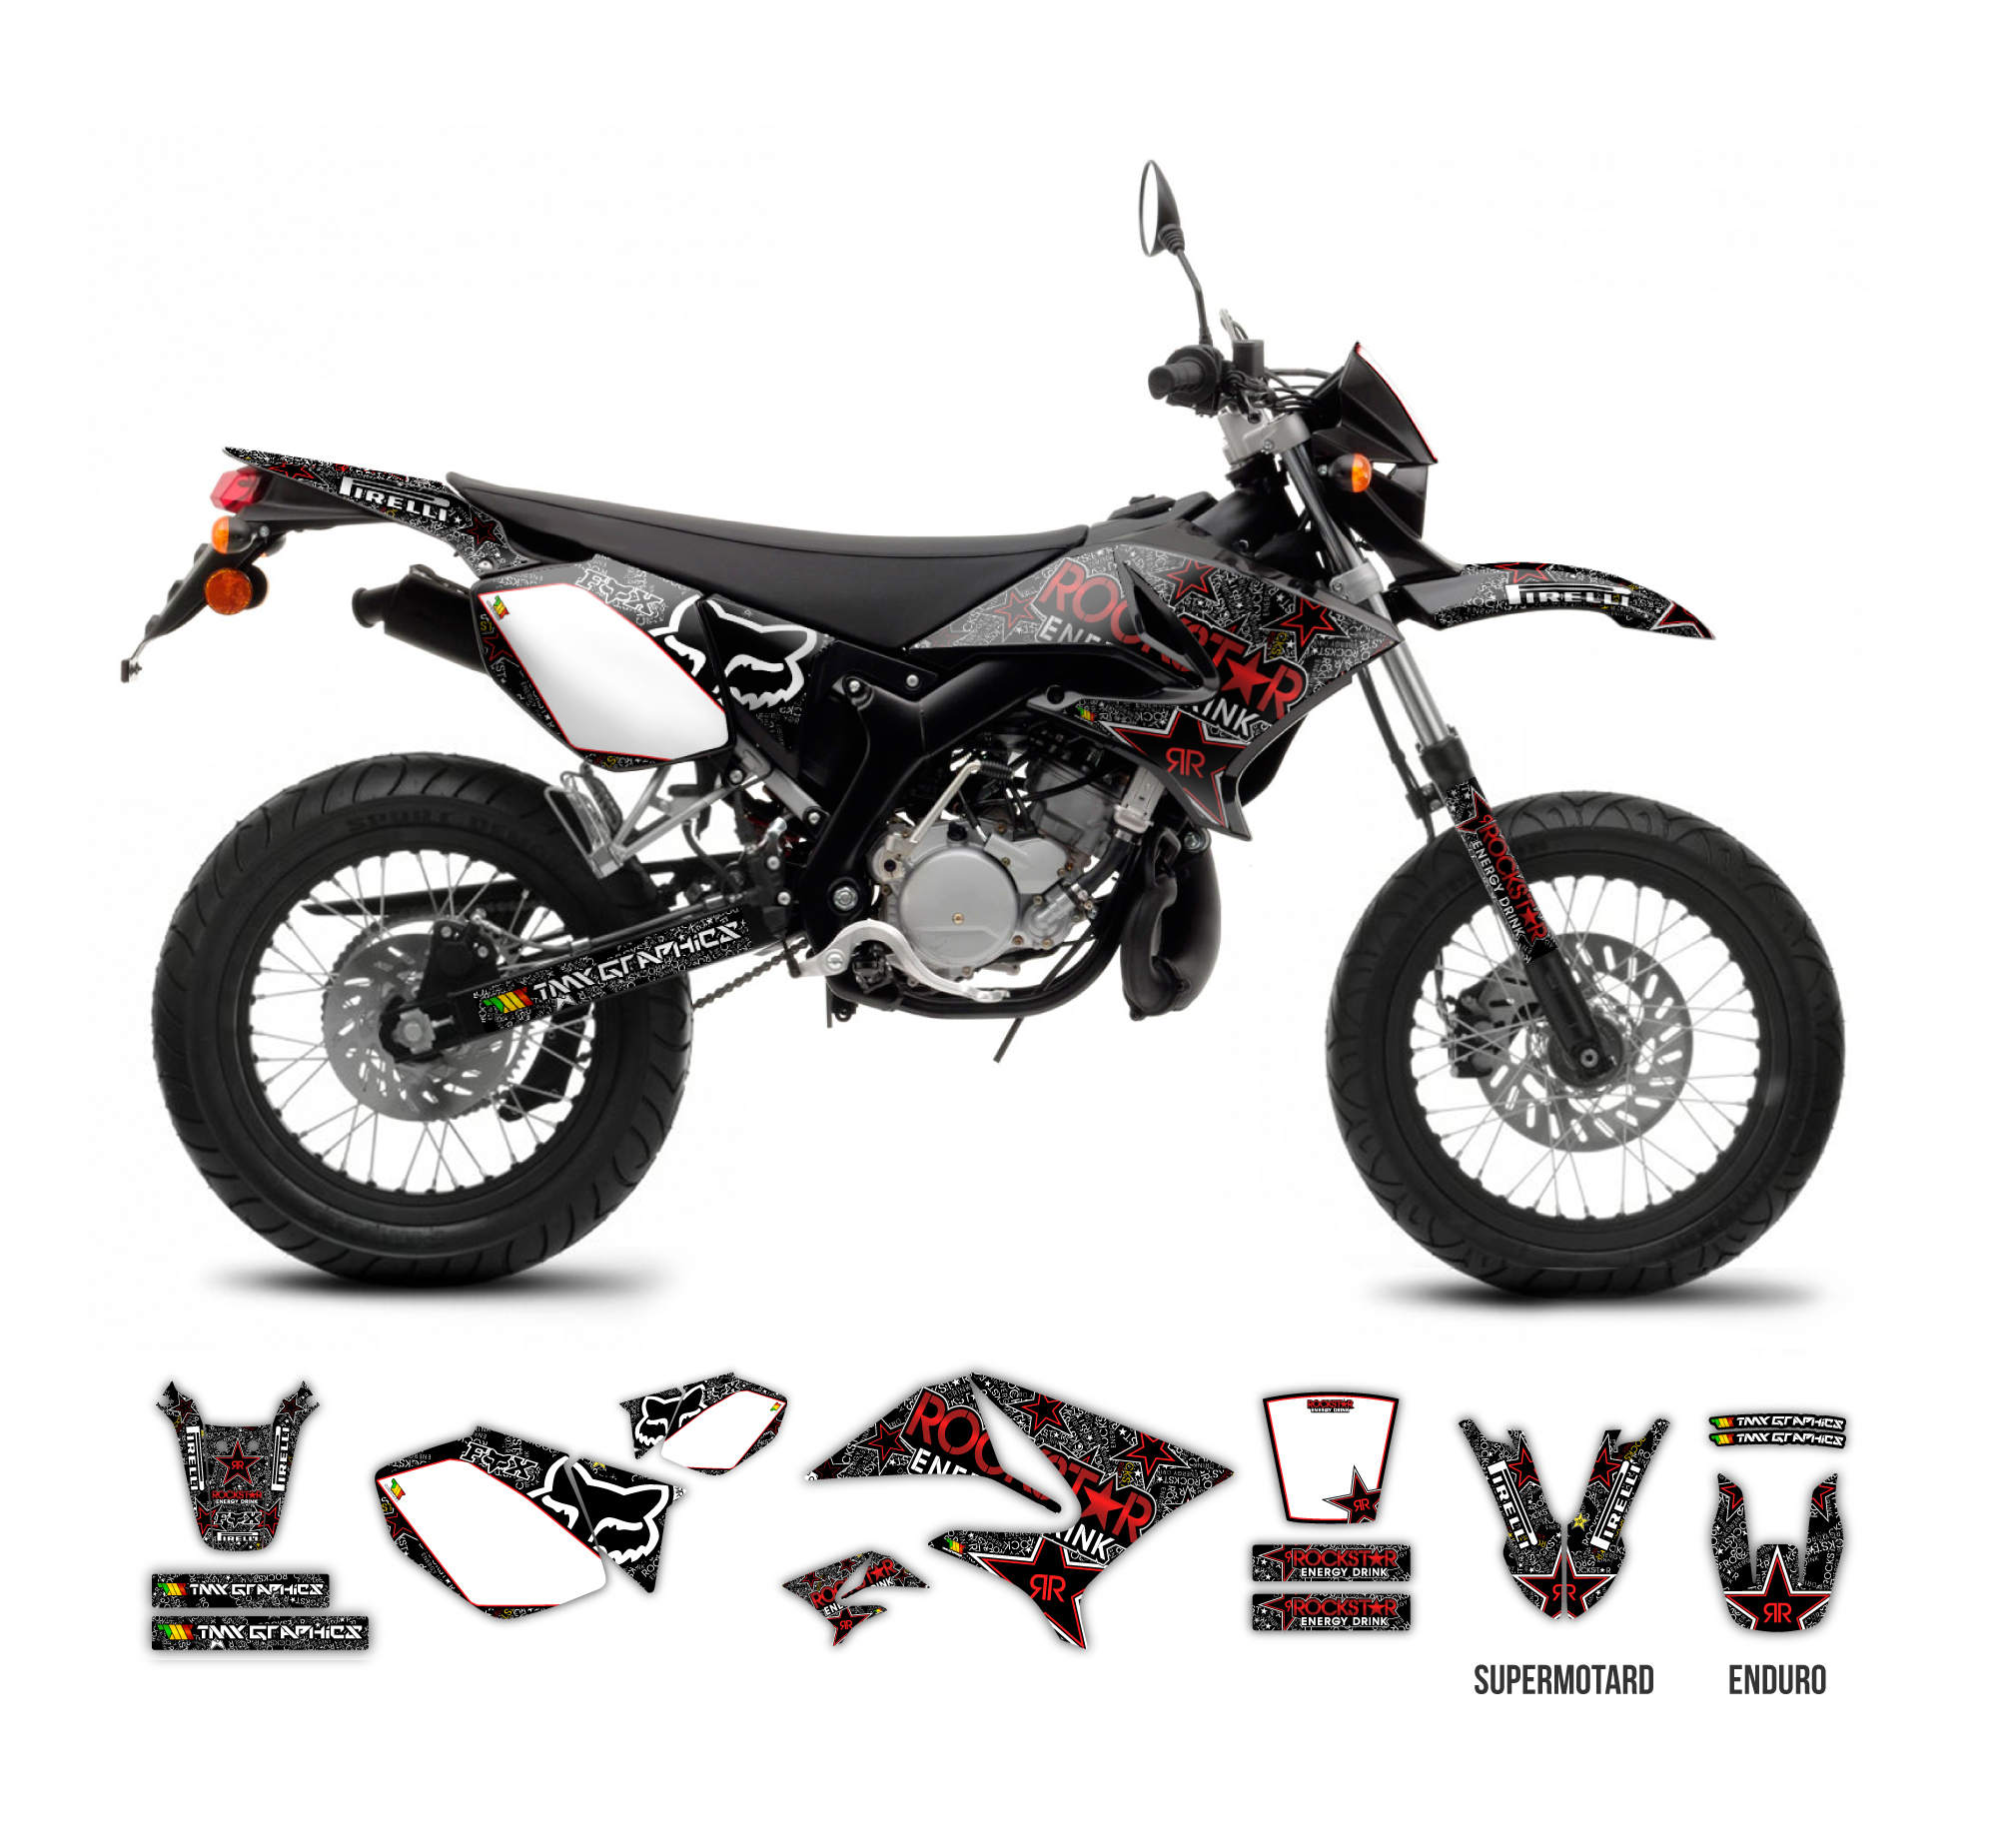 YAMAHA DT 50 X R Rockstar Fox Graphics Series Black TMX